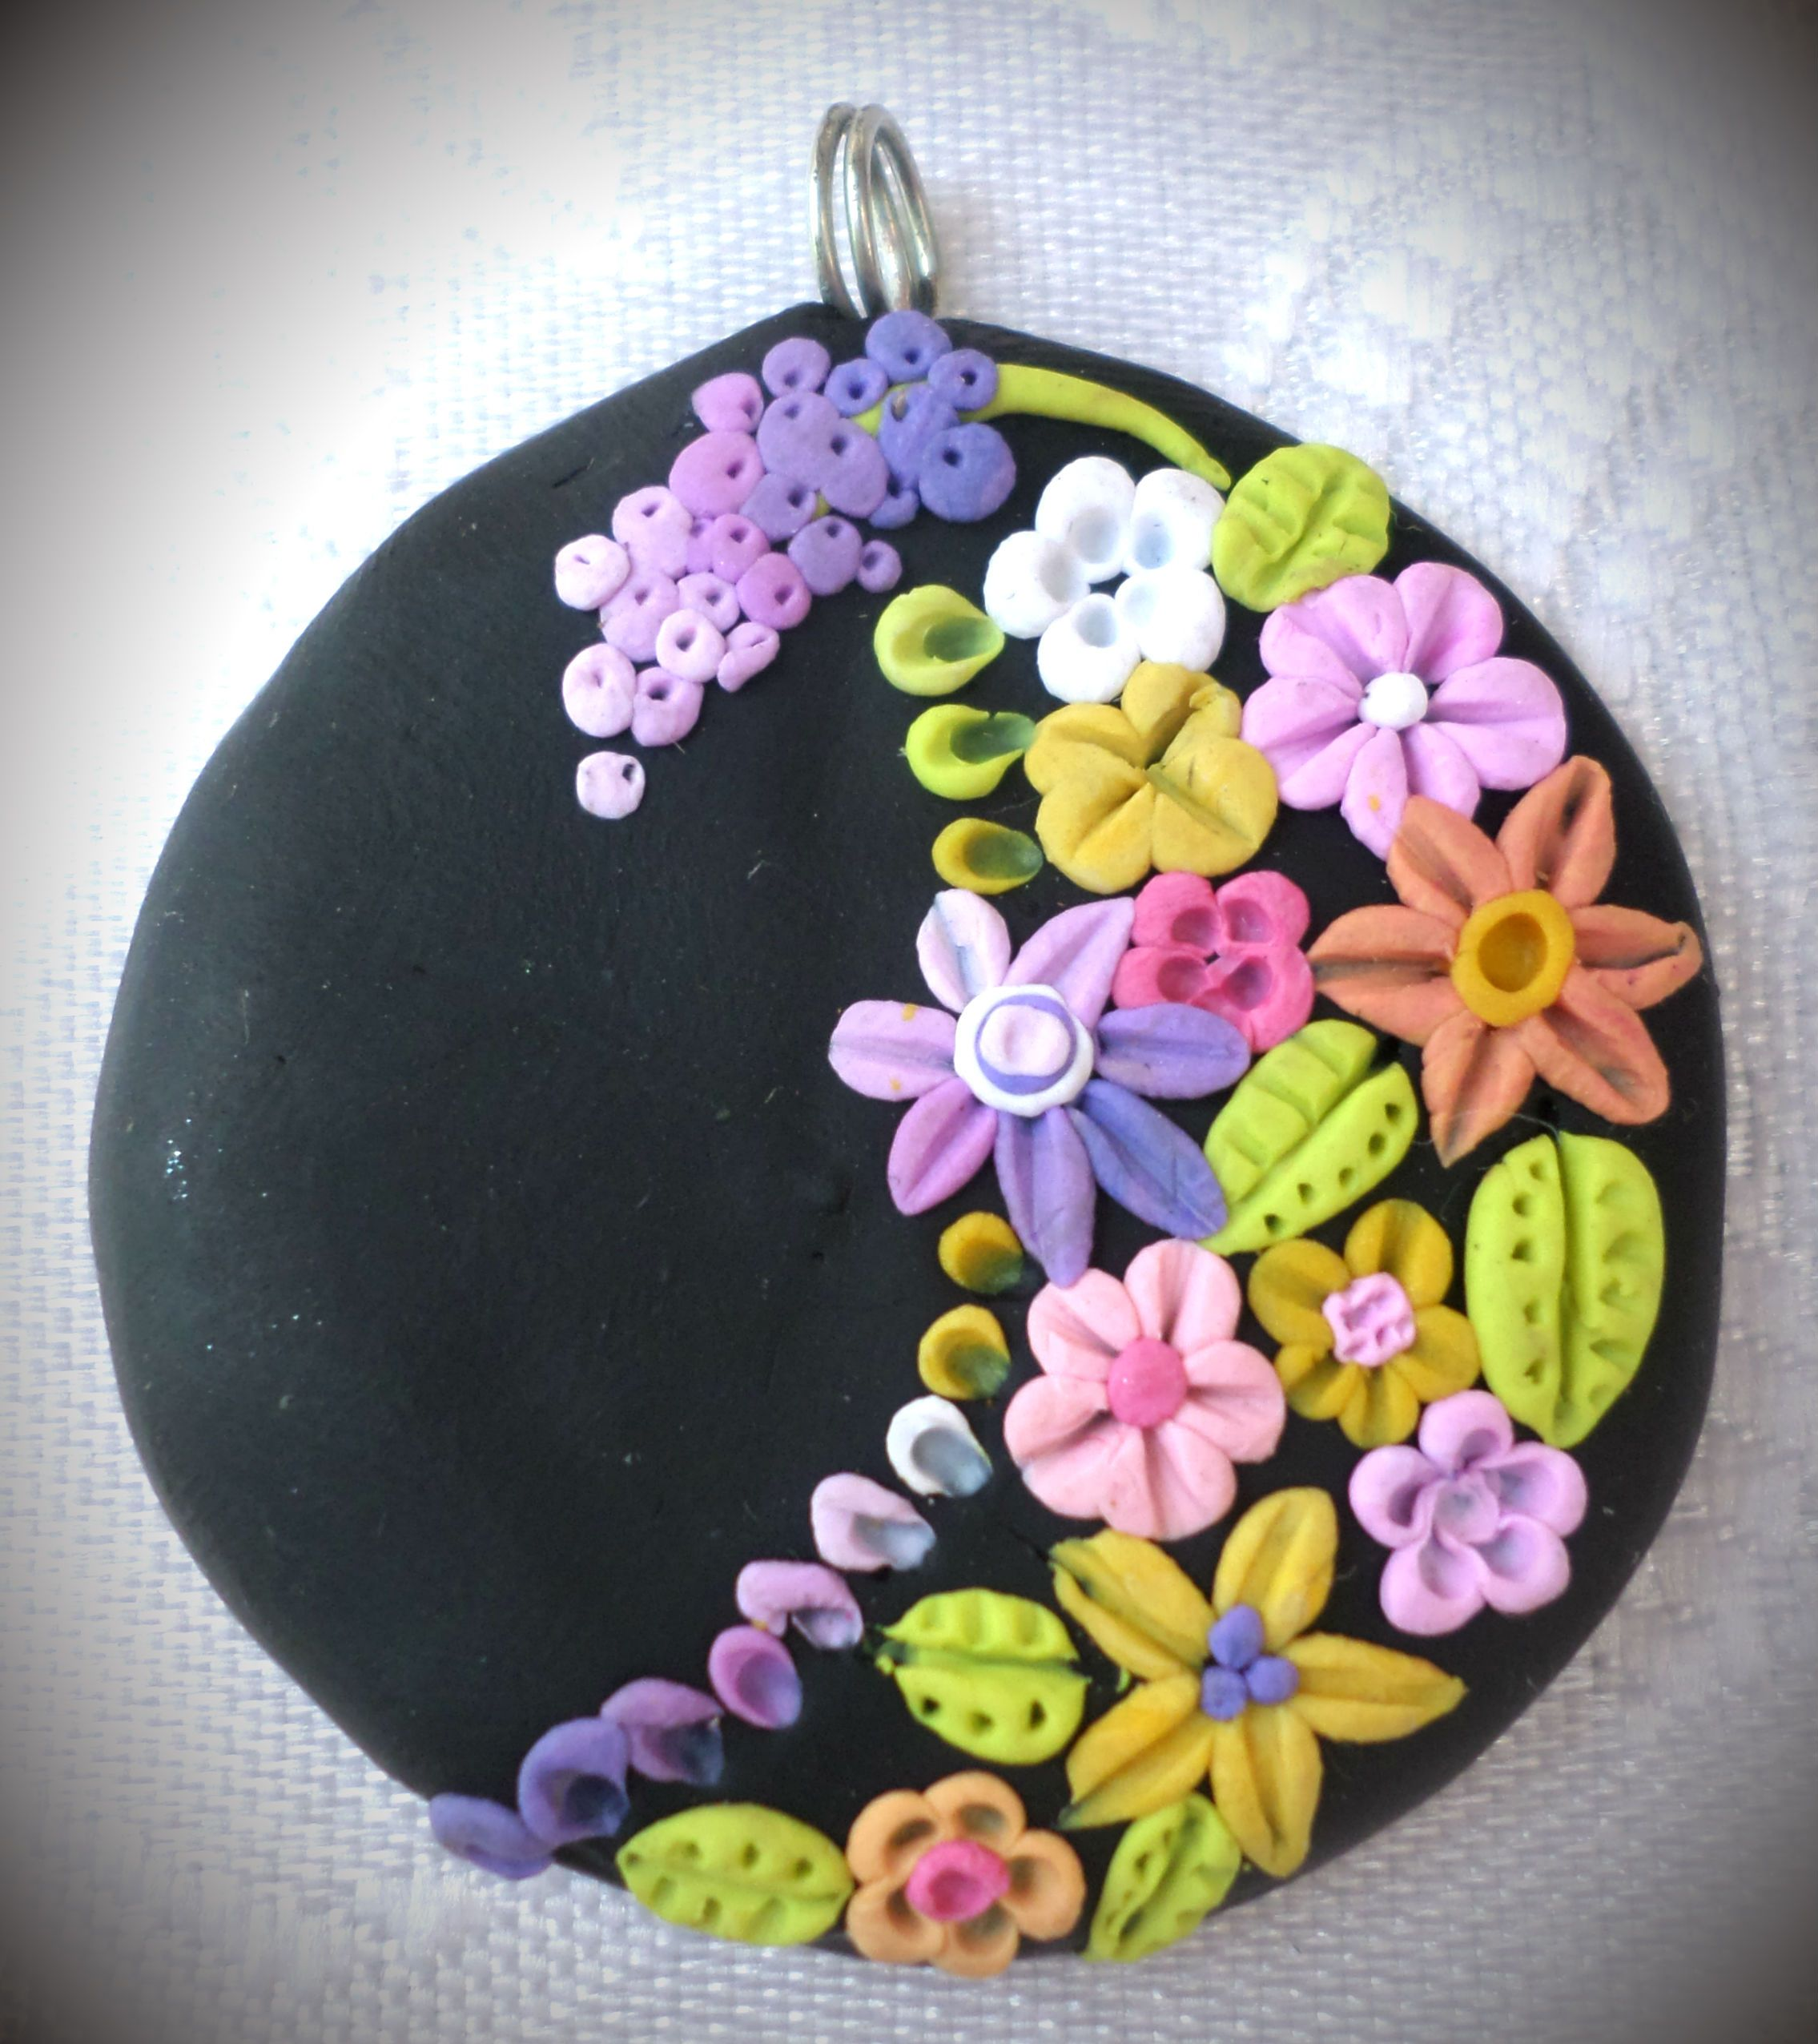 Polymer clay pendant, handmade with applique technique, one of a kind. Black, with multicolored flowers, leaves, and buds. By Lis Shteindel